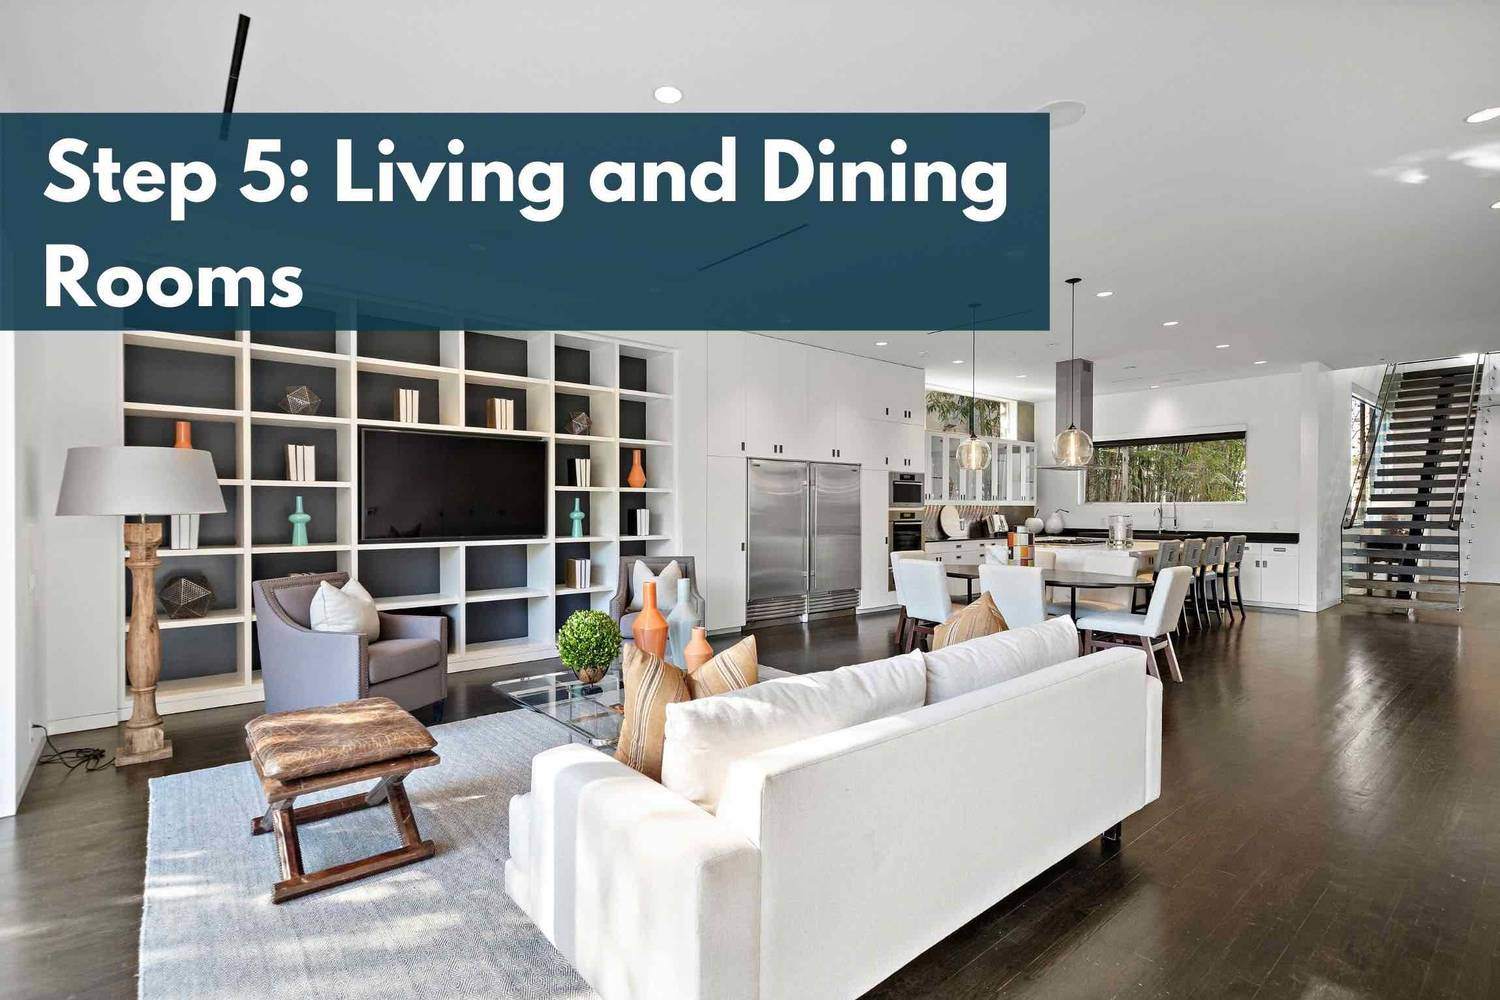 Step 5: Living and Dining Rooms